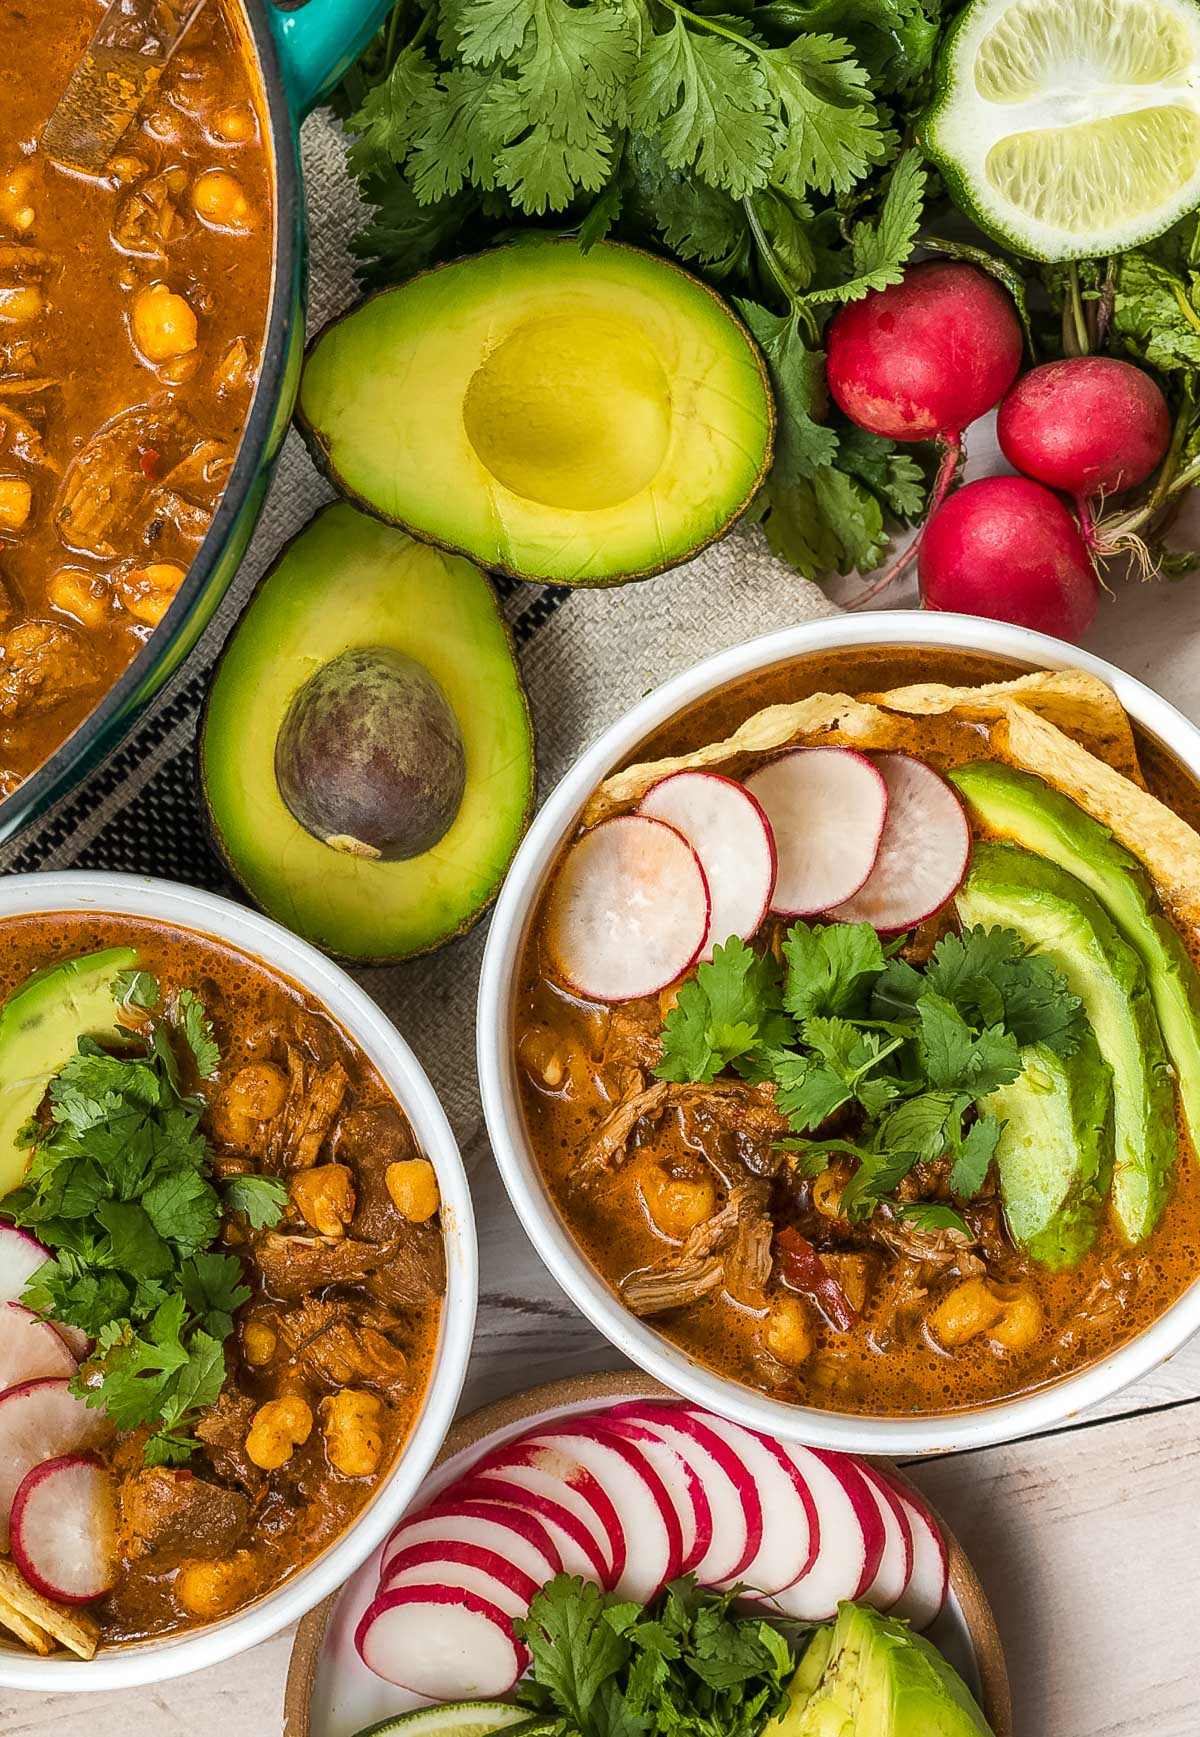 Red Posole Recipe with Pork (Pozole Rojo)